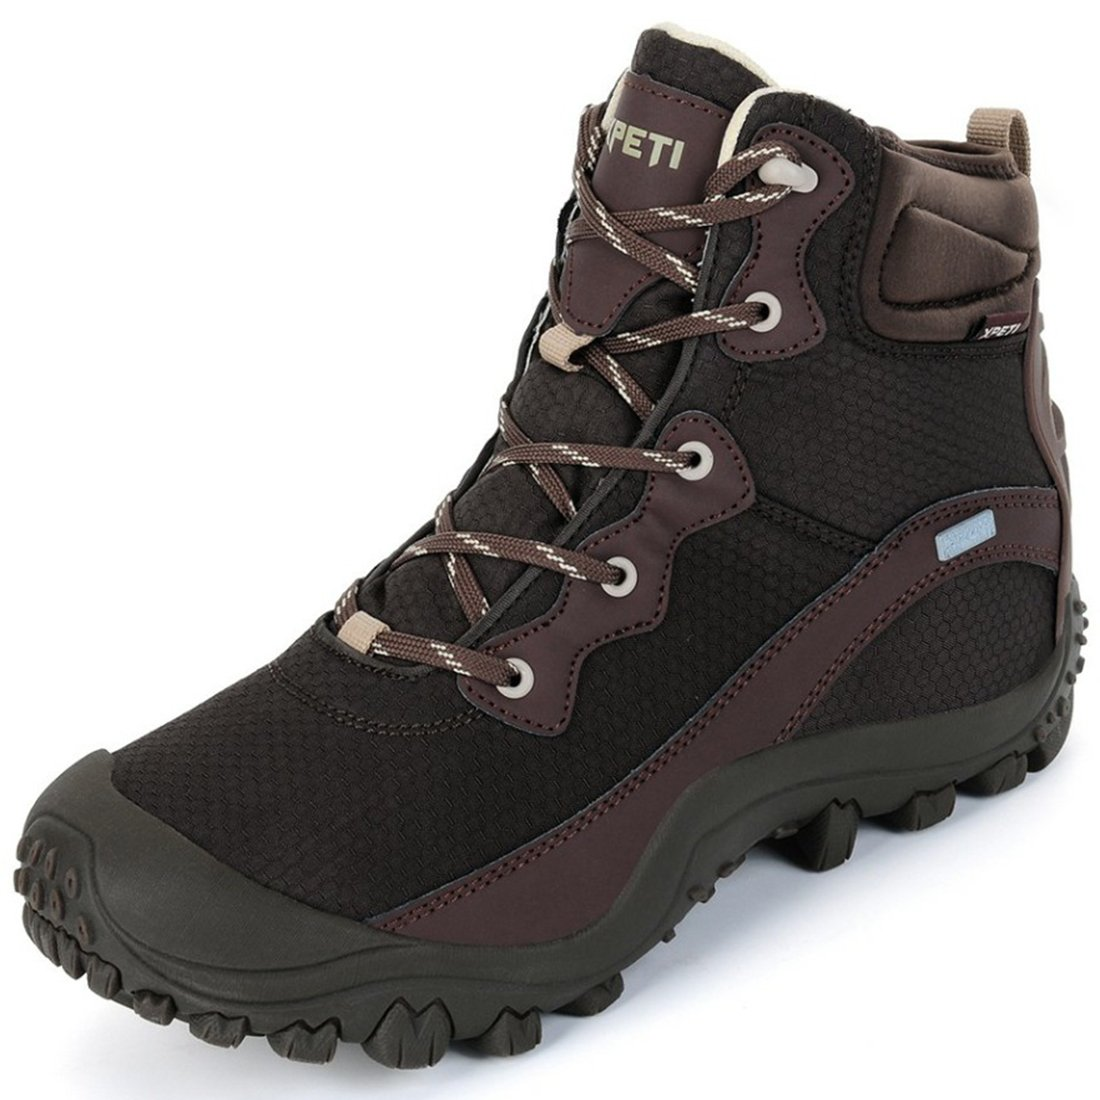 XPETI Men's Dimo Mid Waterproof Trail Hiking All-Weather Protection Boot Coffee 8 Hill Walking Fashionable Stylish Shoes